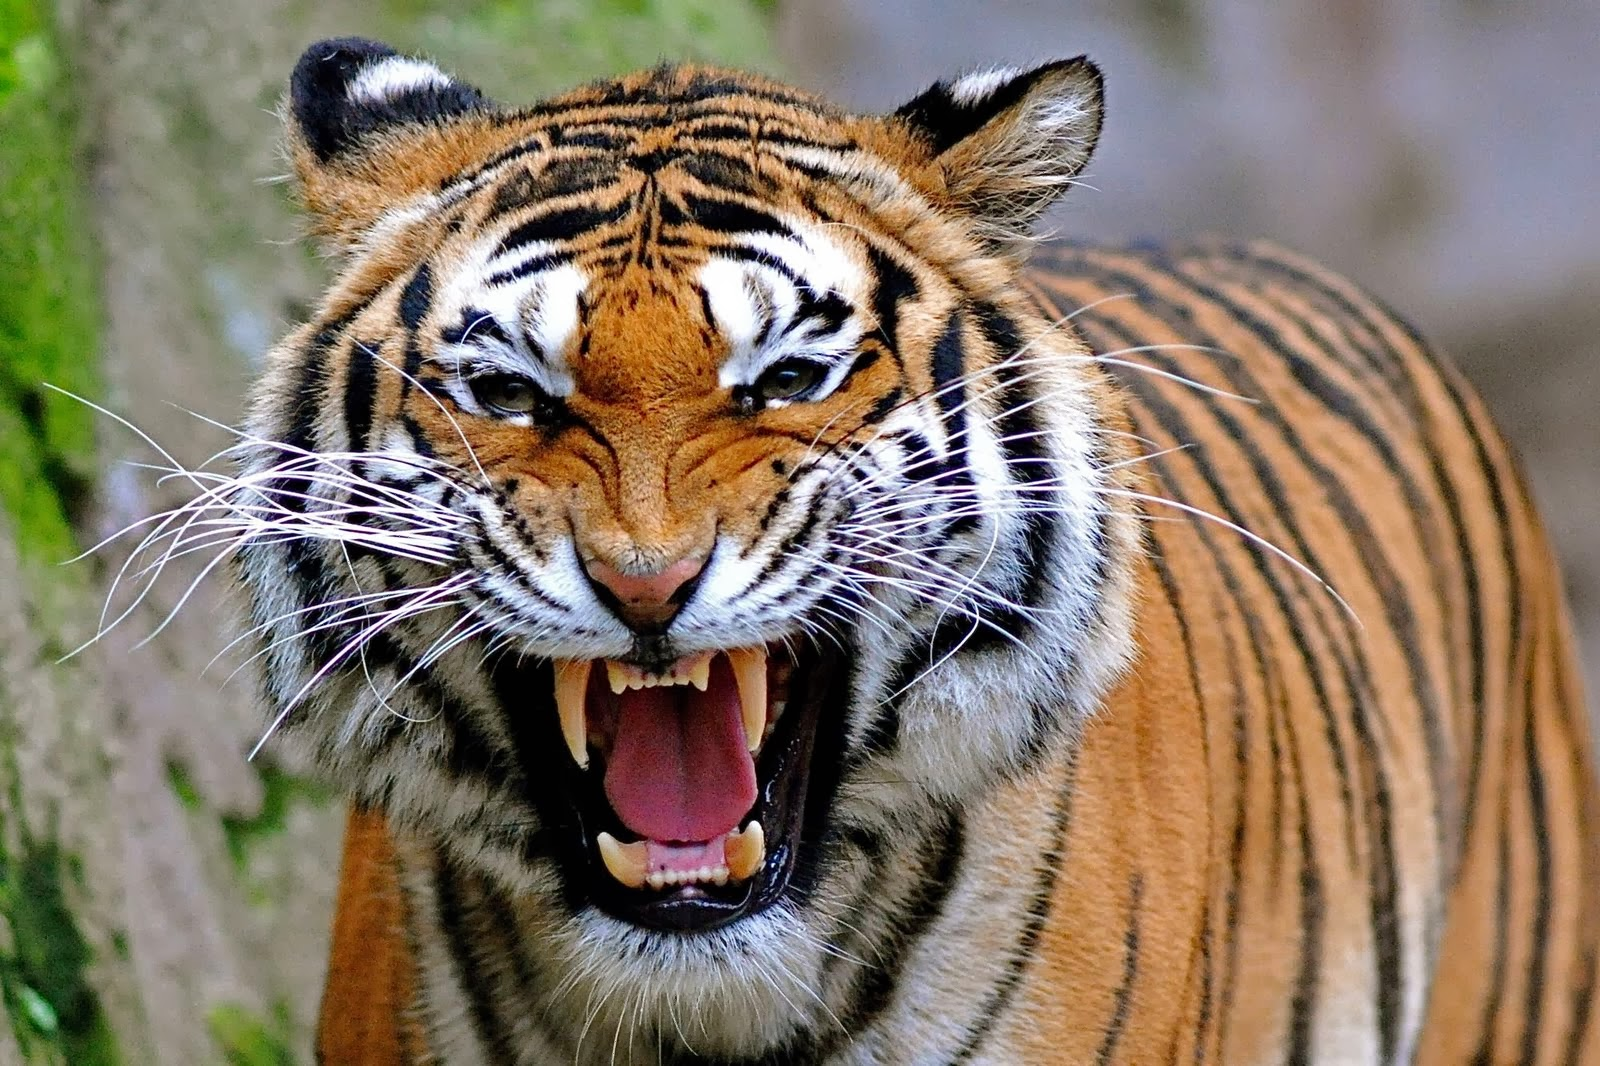 Tiger Face Wallpapers Free Hd Desktop Wallpapers Download